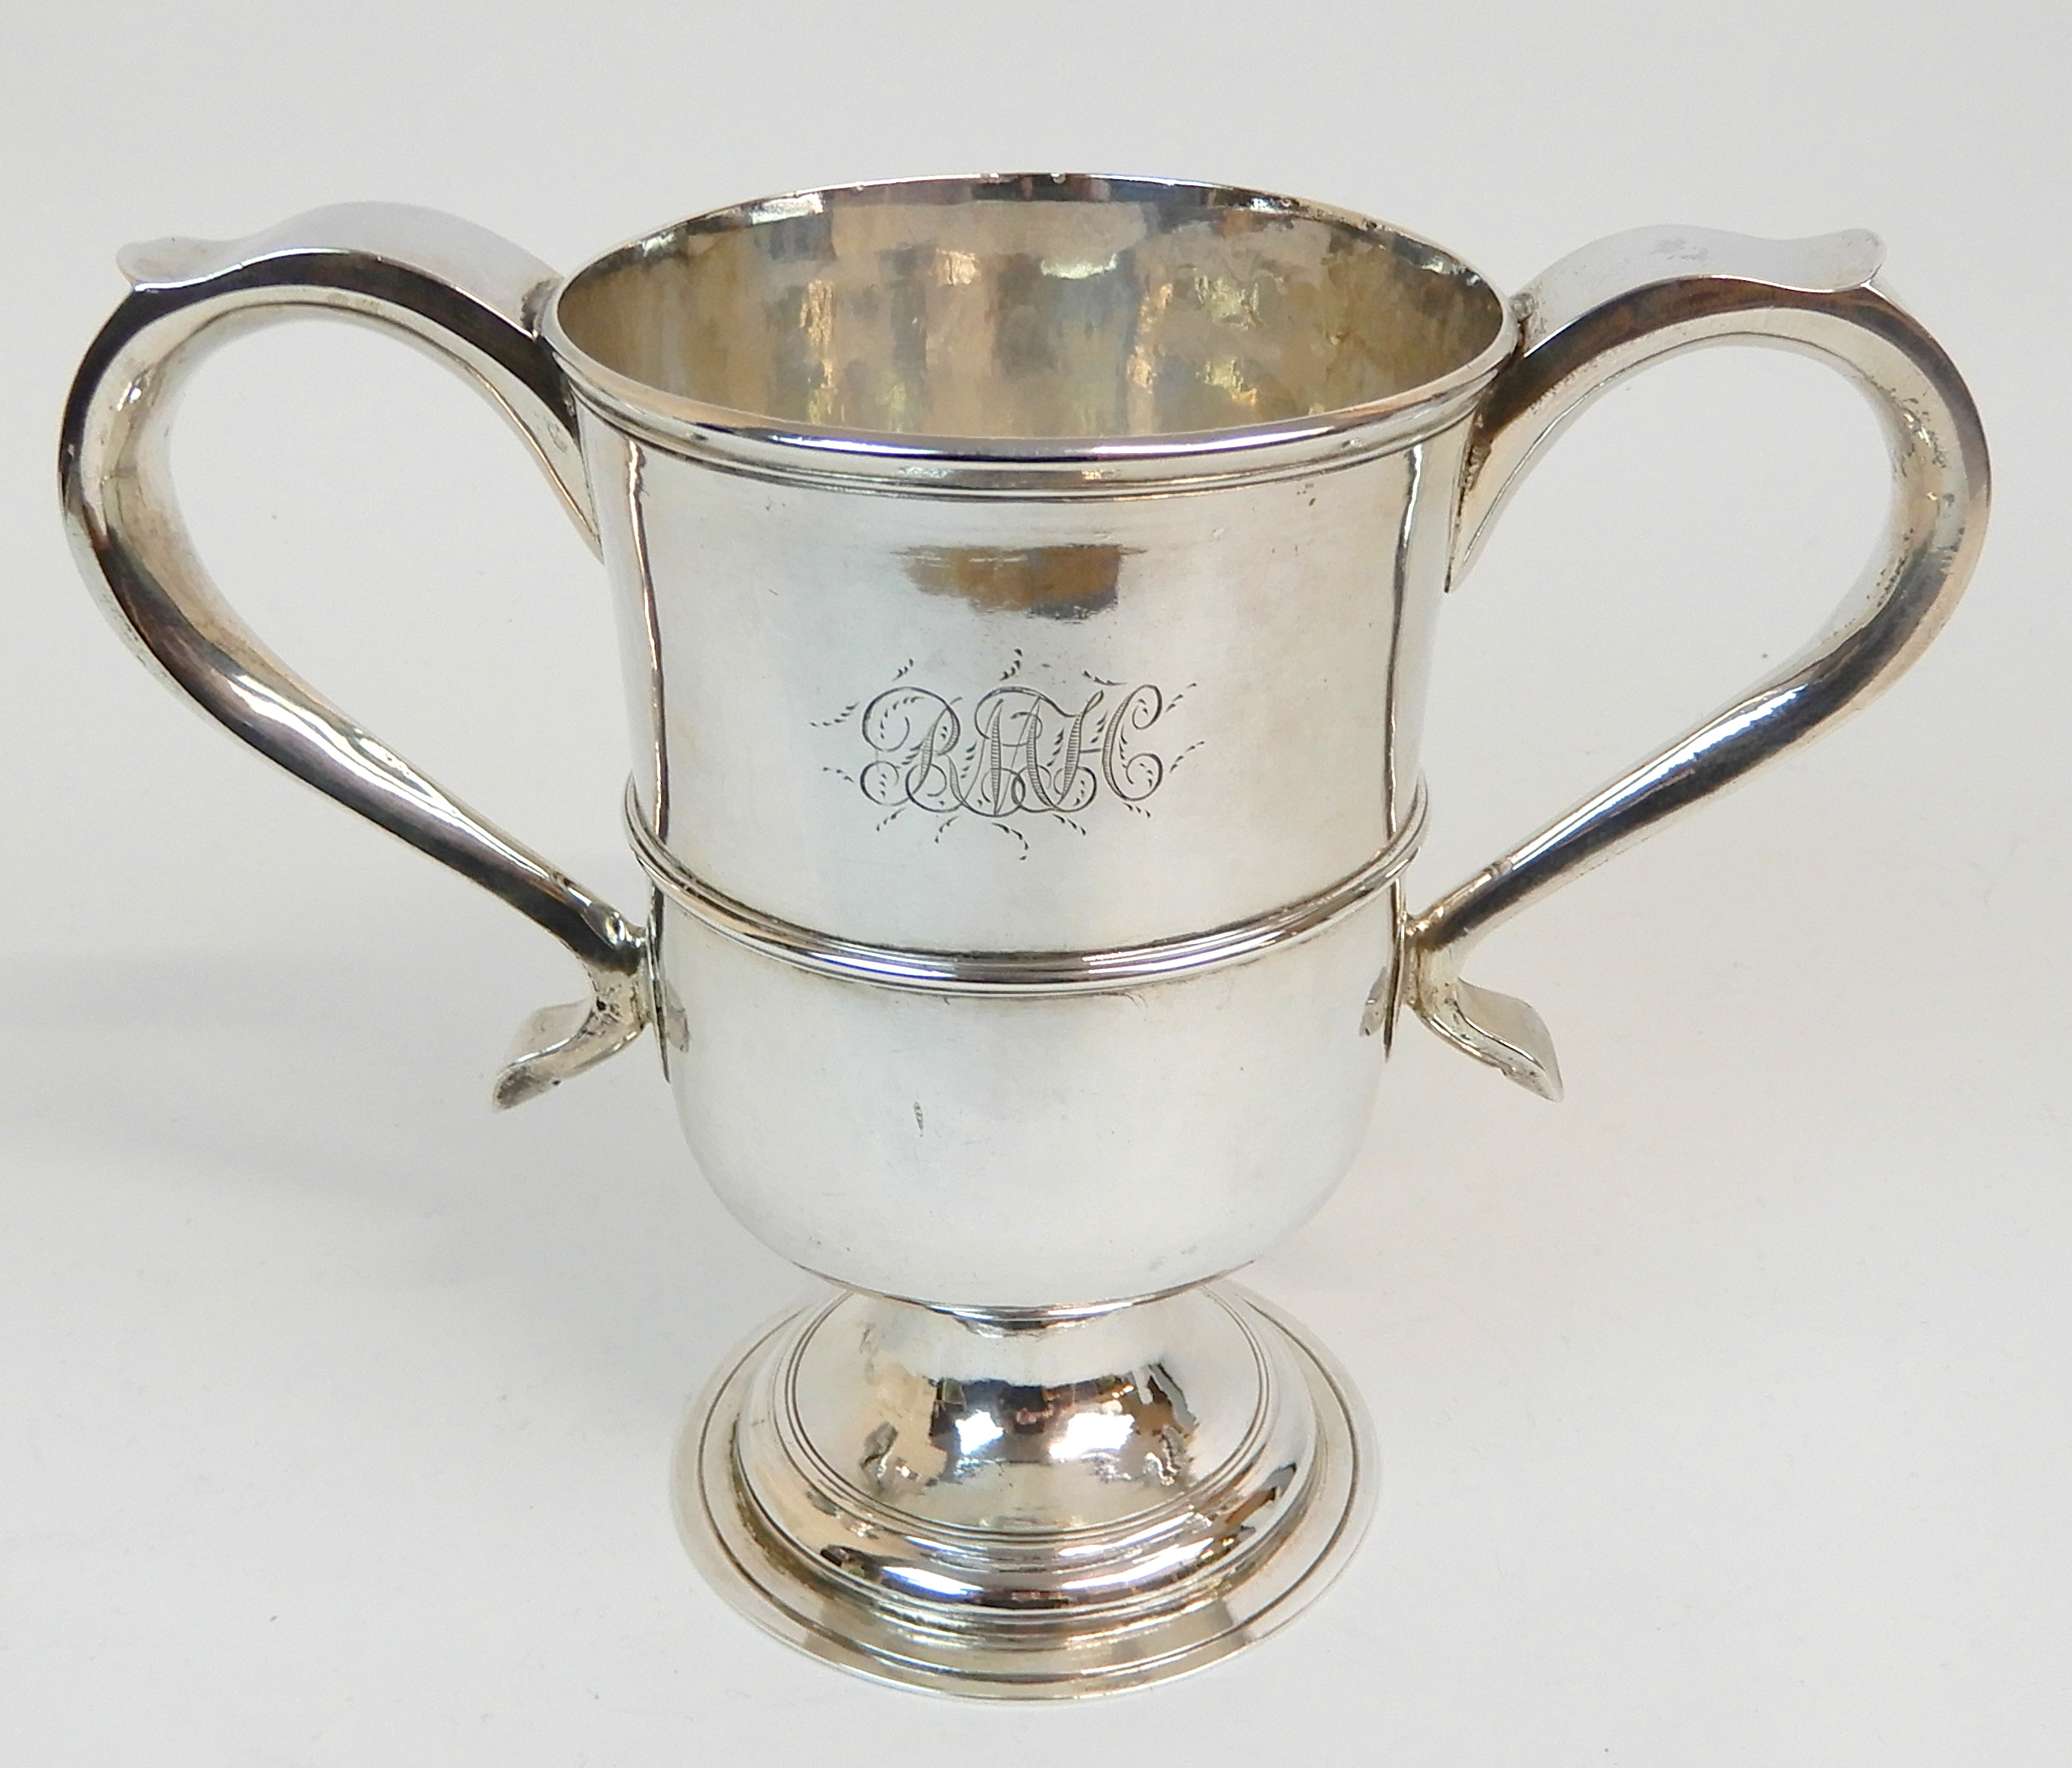 Lot 121 - A GEORGE III SILVER TROPHY CUP by Dorothy Langlands, Newcastle 1811, of cylindrical form with